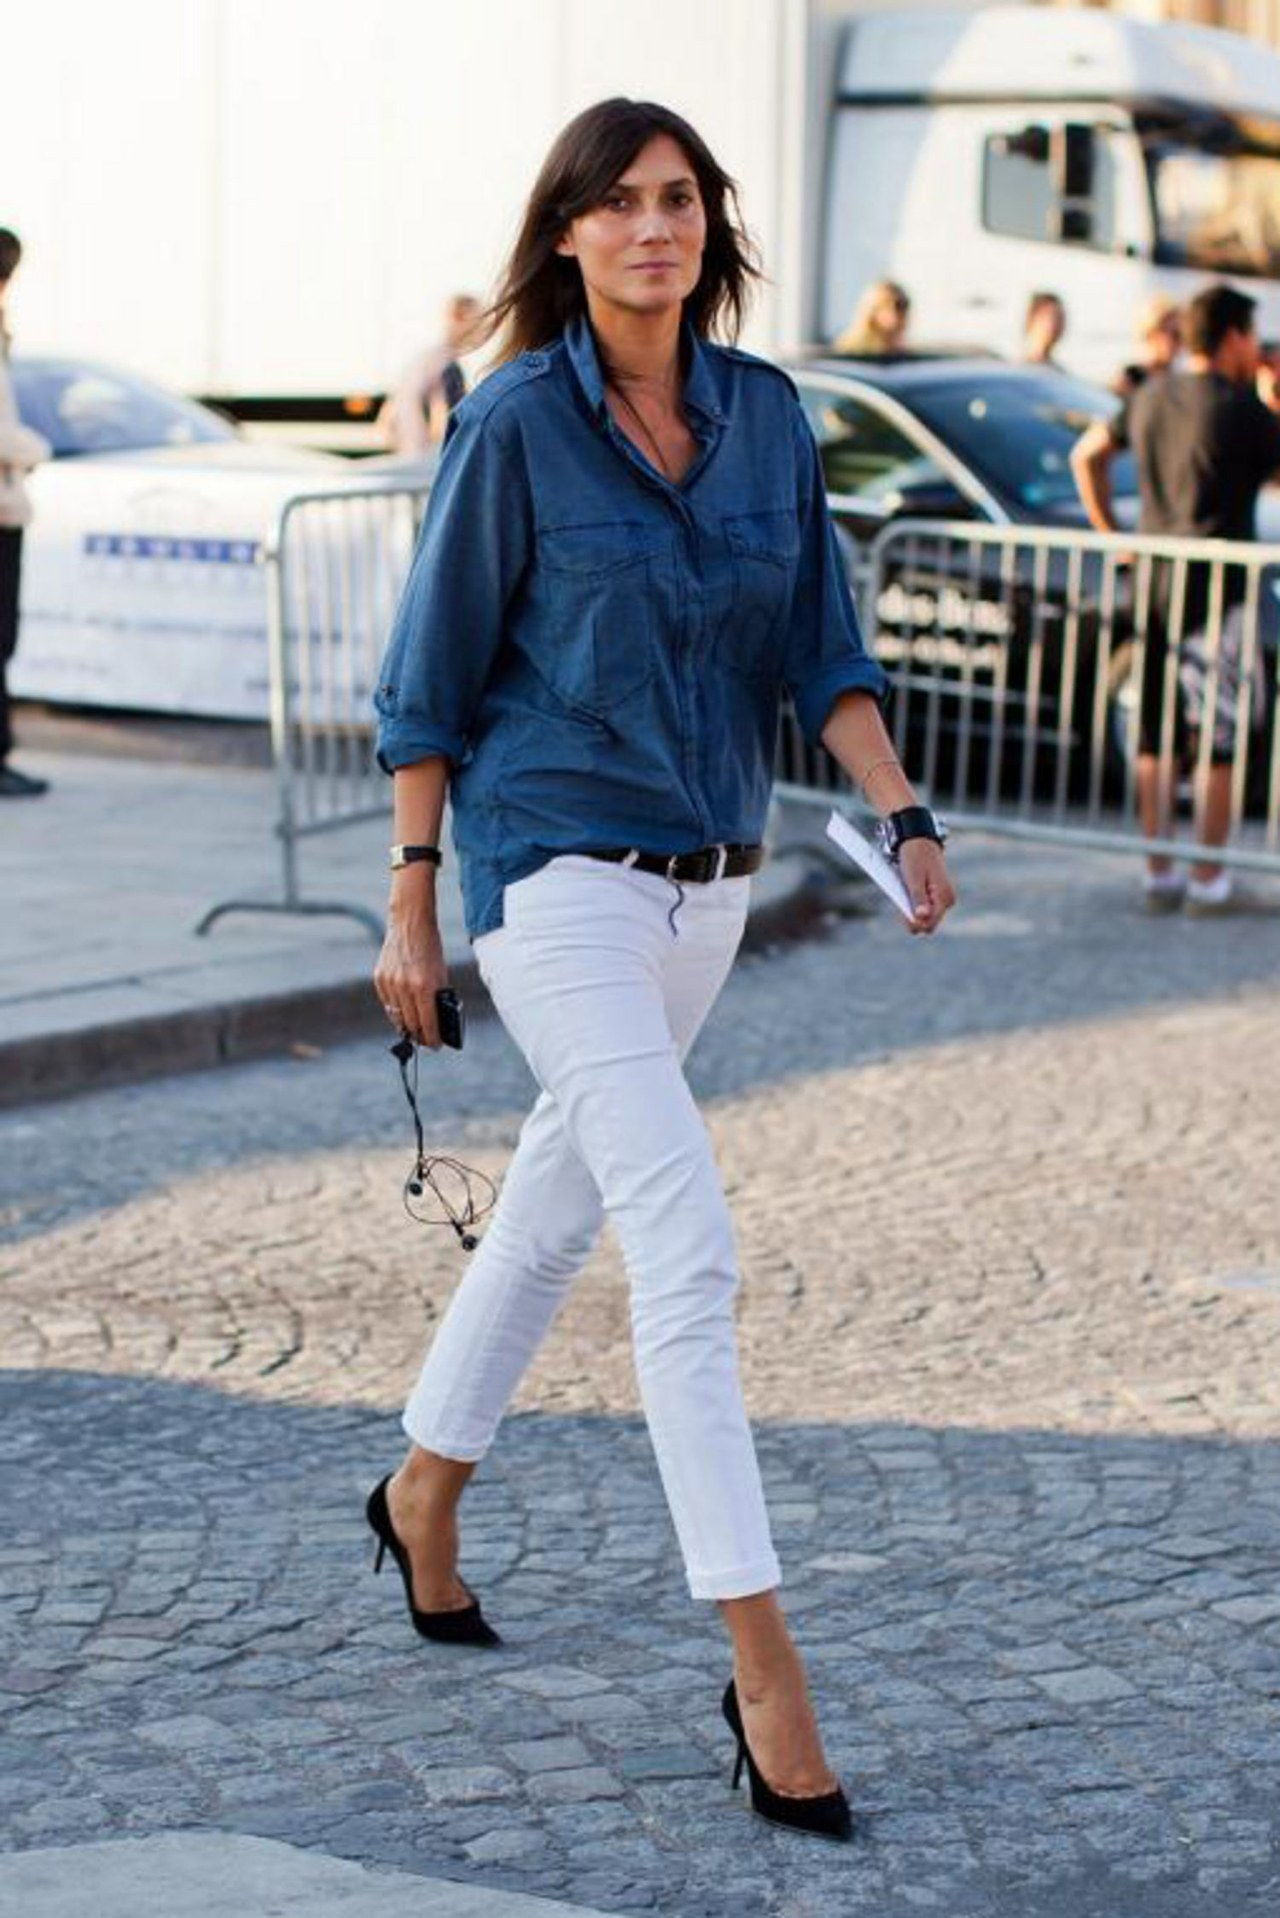 pudota winter white jeans stockholm streetstyle